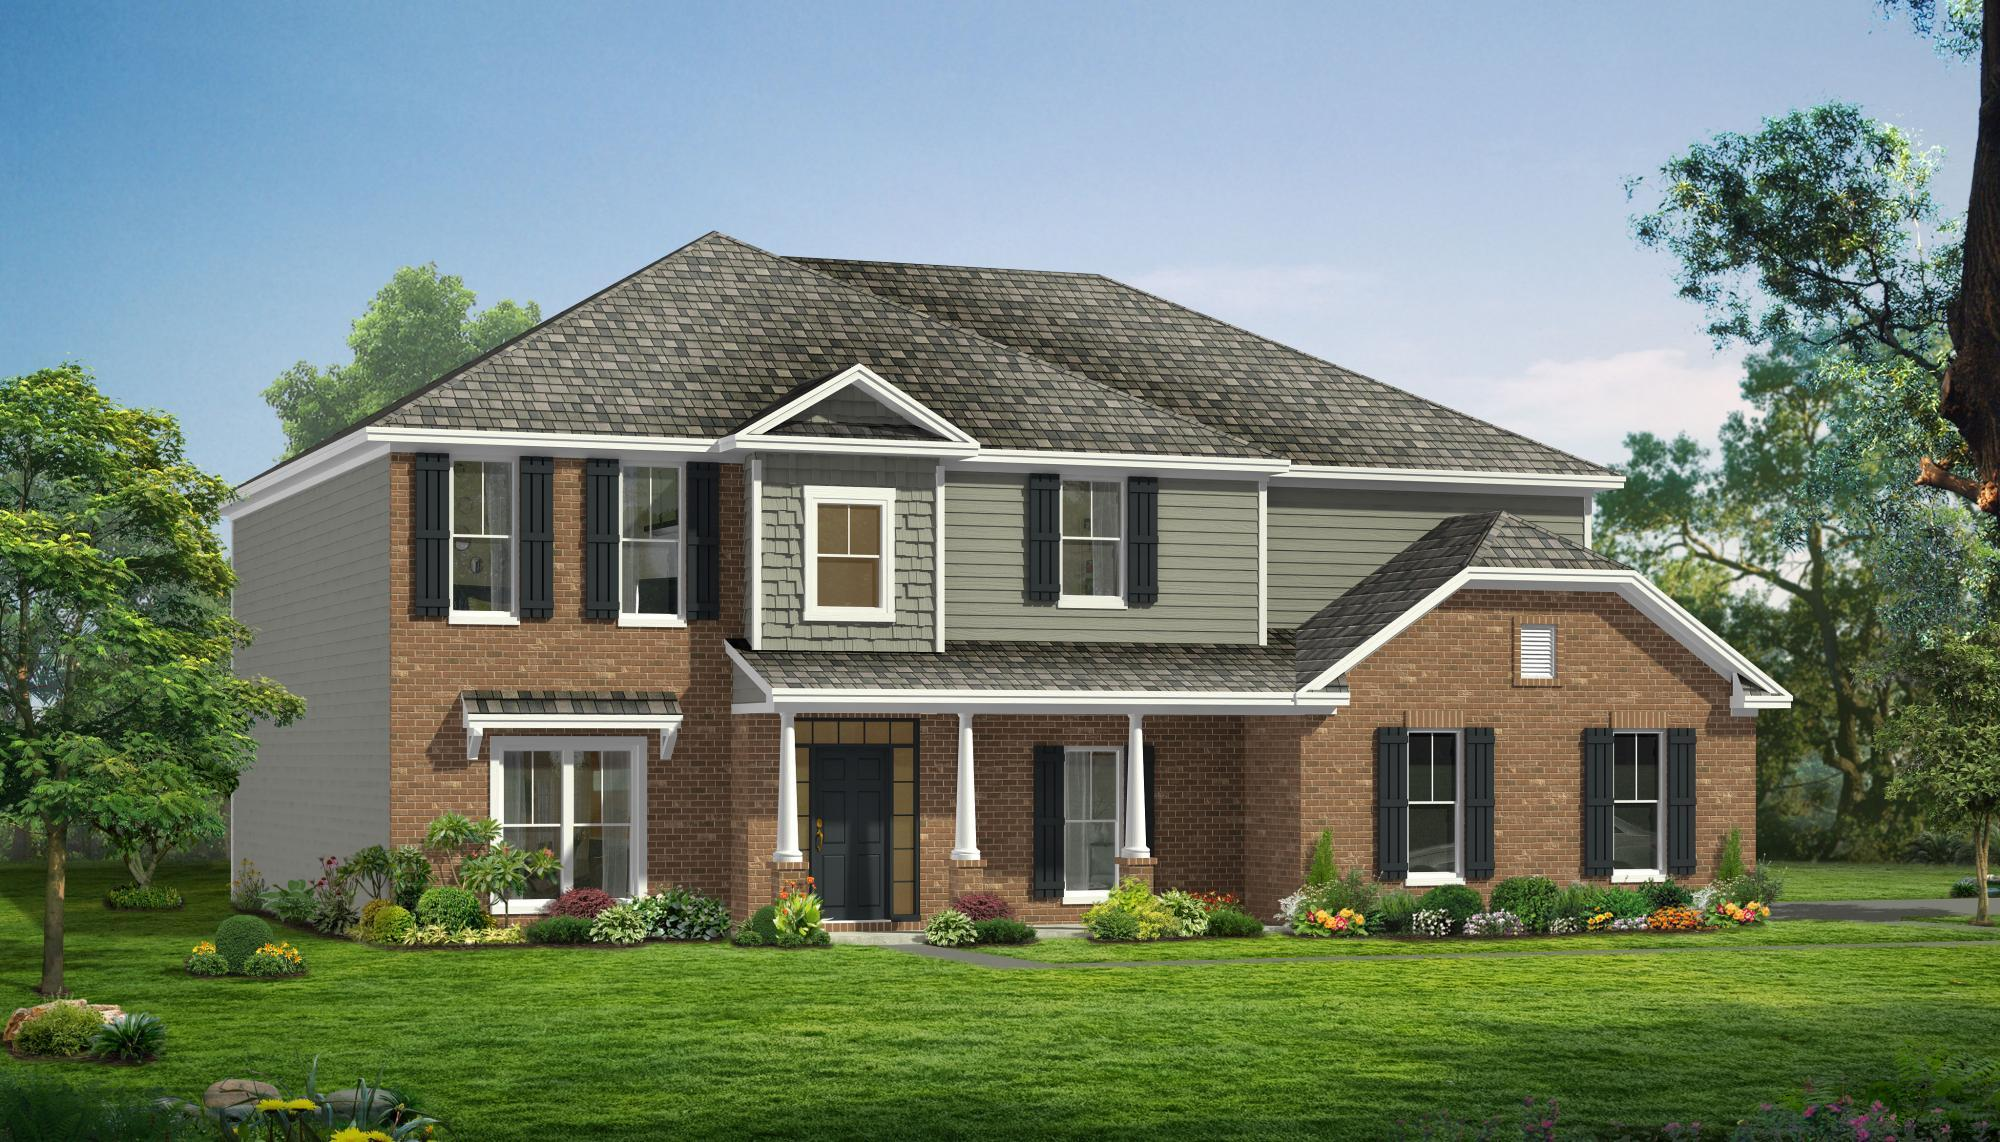 Single Family for Active at Woodland Trail - Montgomery Se 347 Oak Level Road Richmond Hill, Georgia 31324 United States